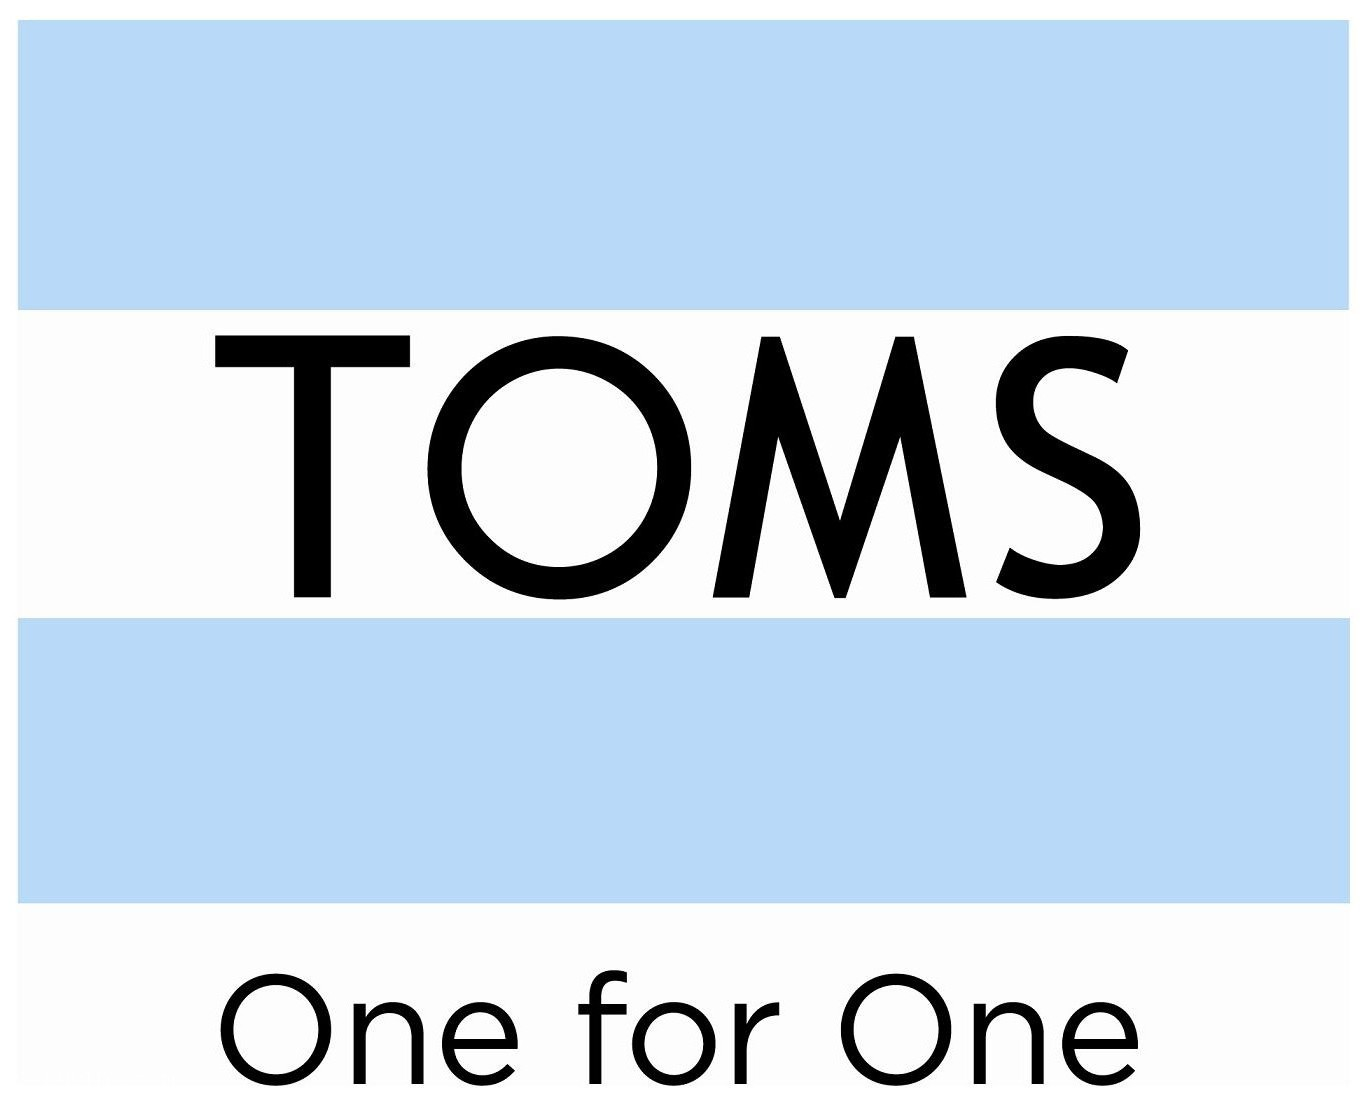 TOMS-logo-with-mission-e1349137982834